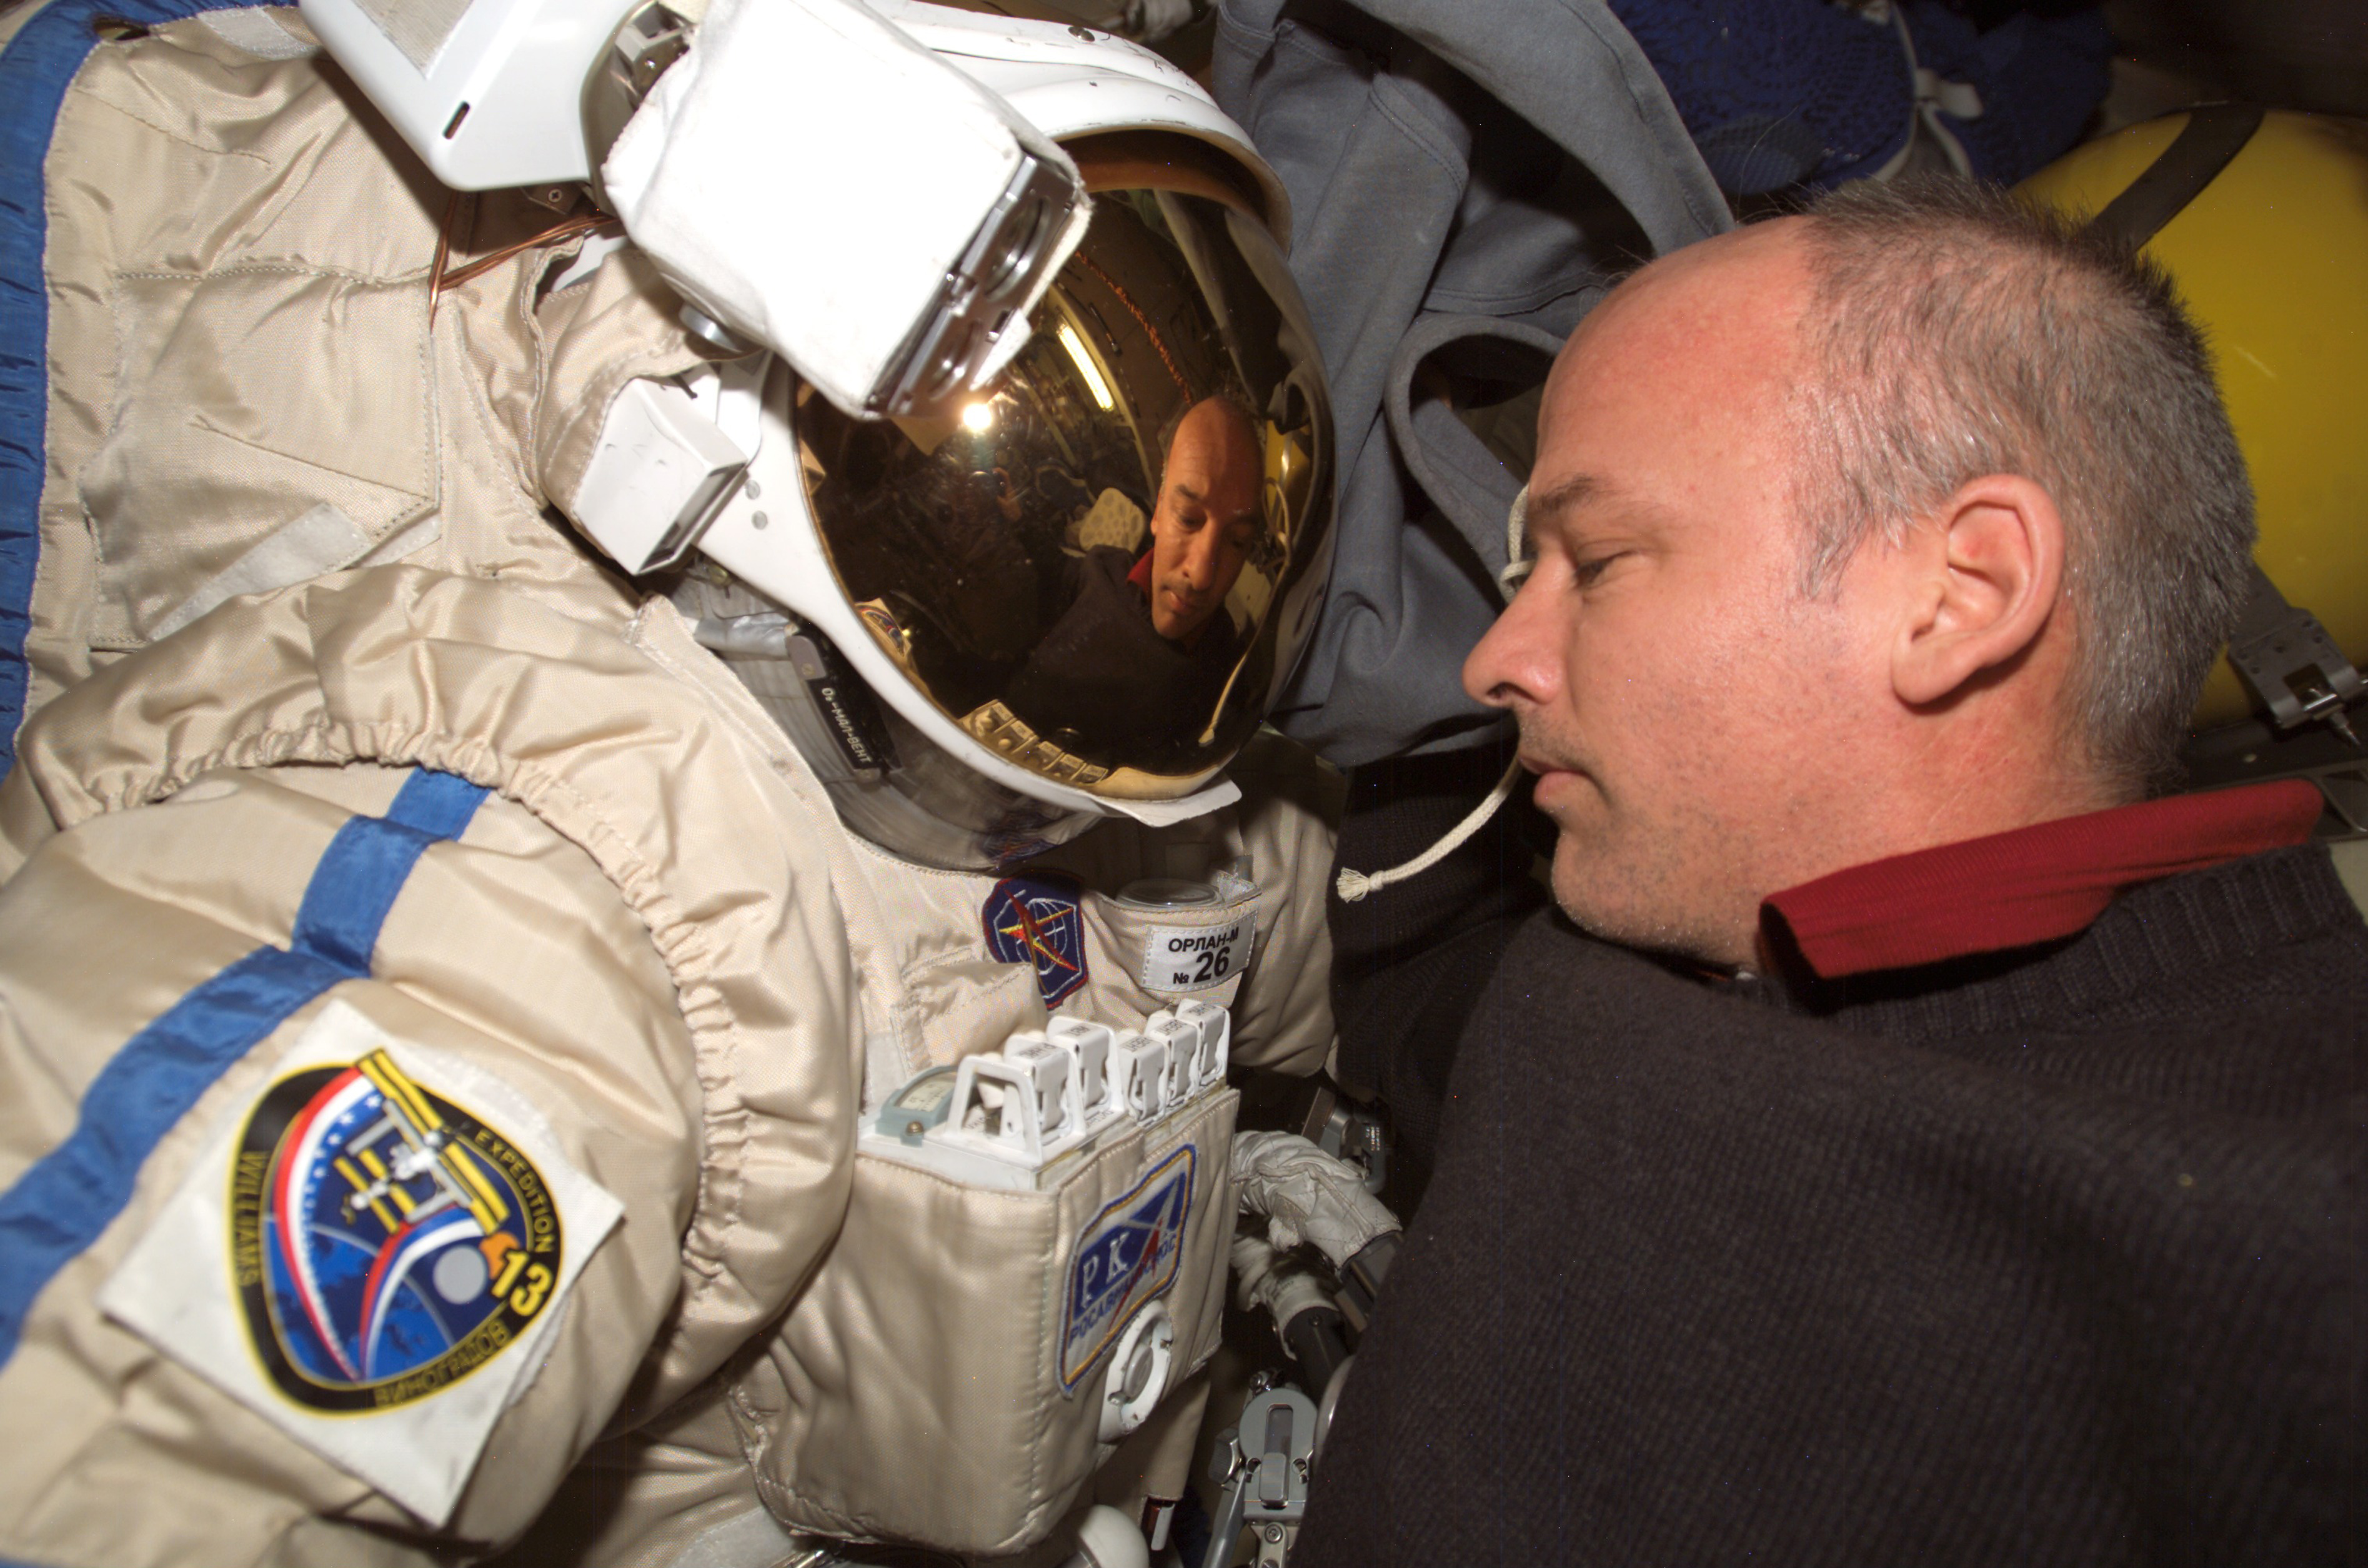 Photograph of Astronaut Jeffrey N. Williams Checking His Russian.